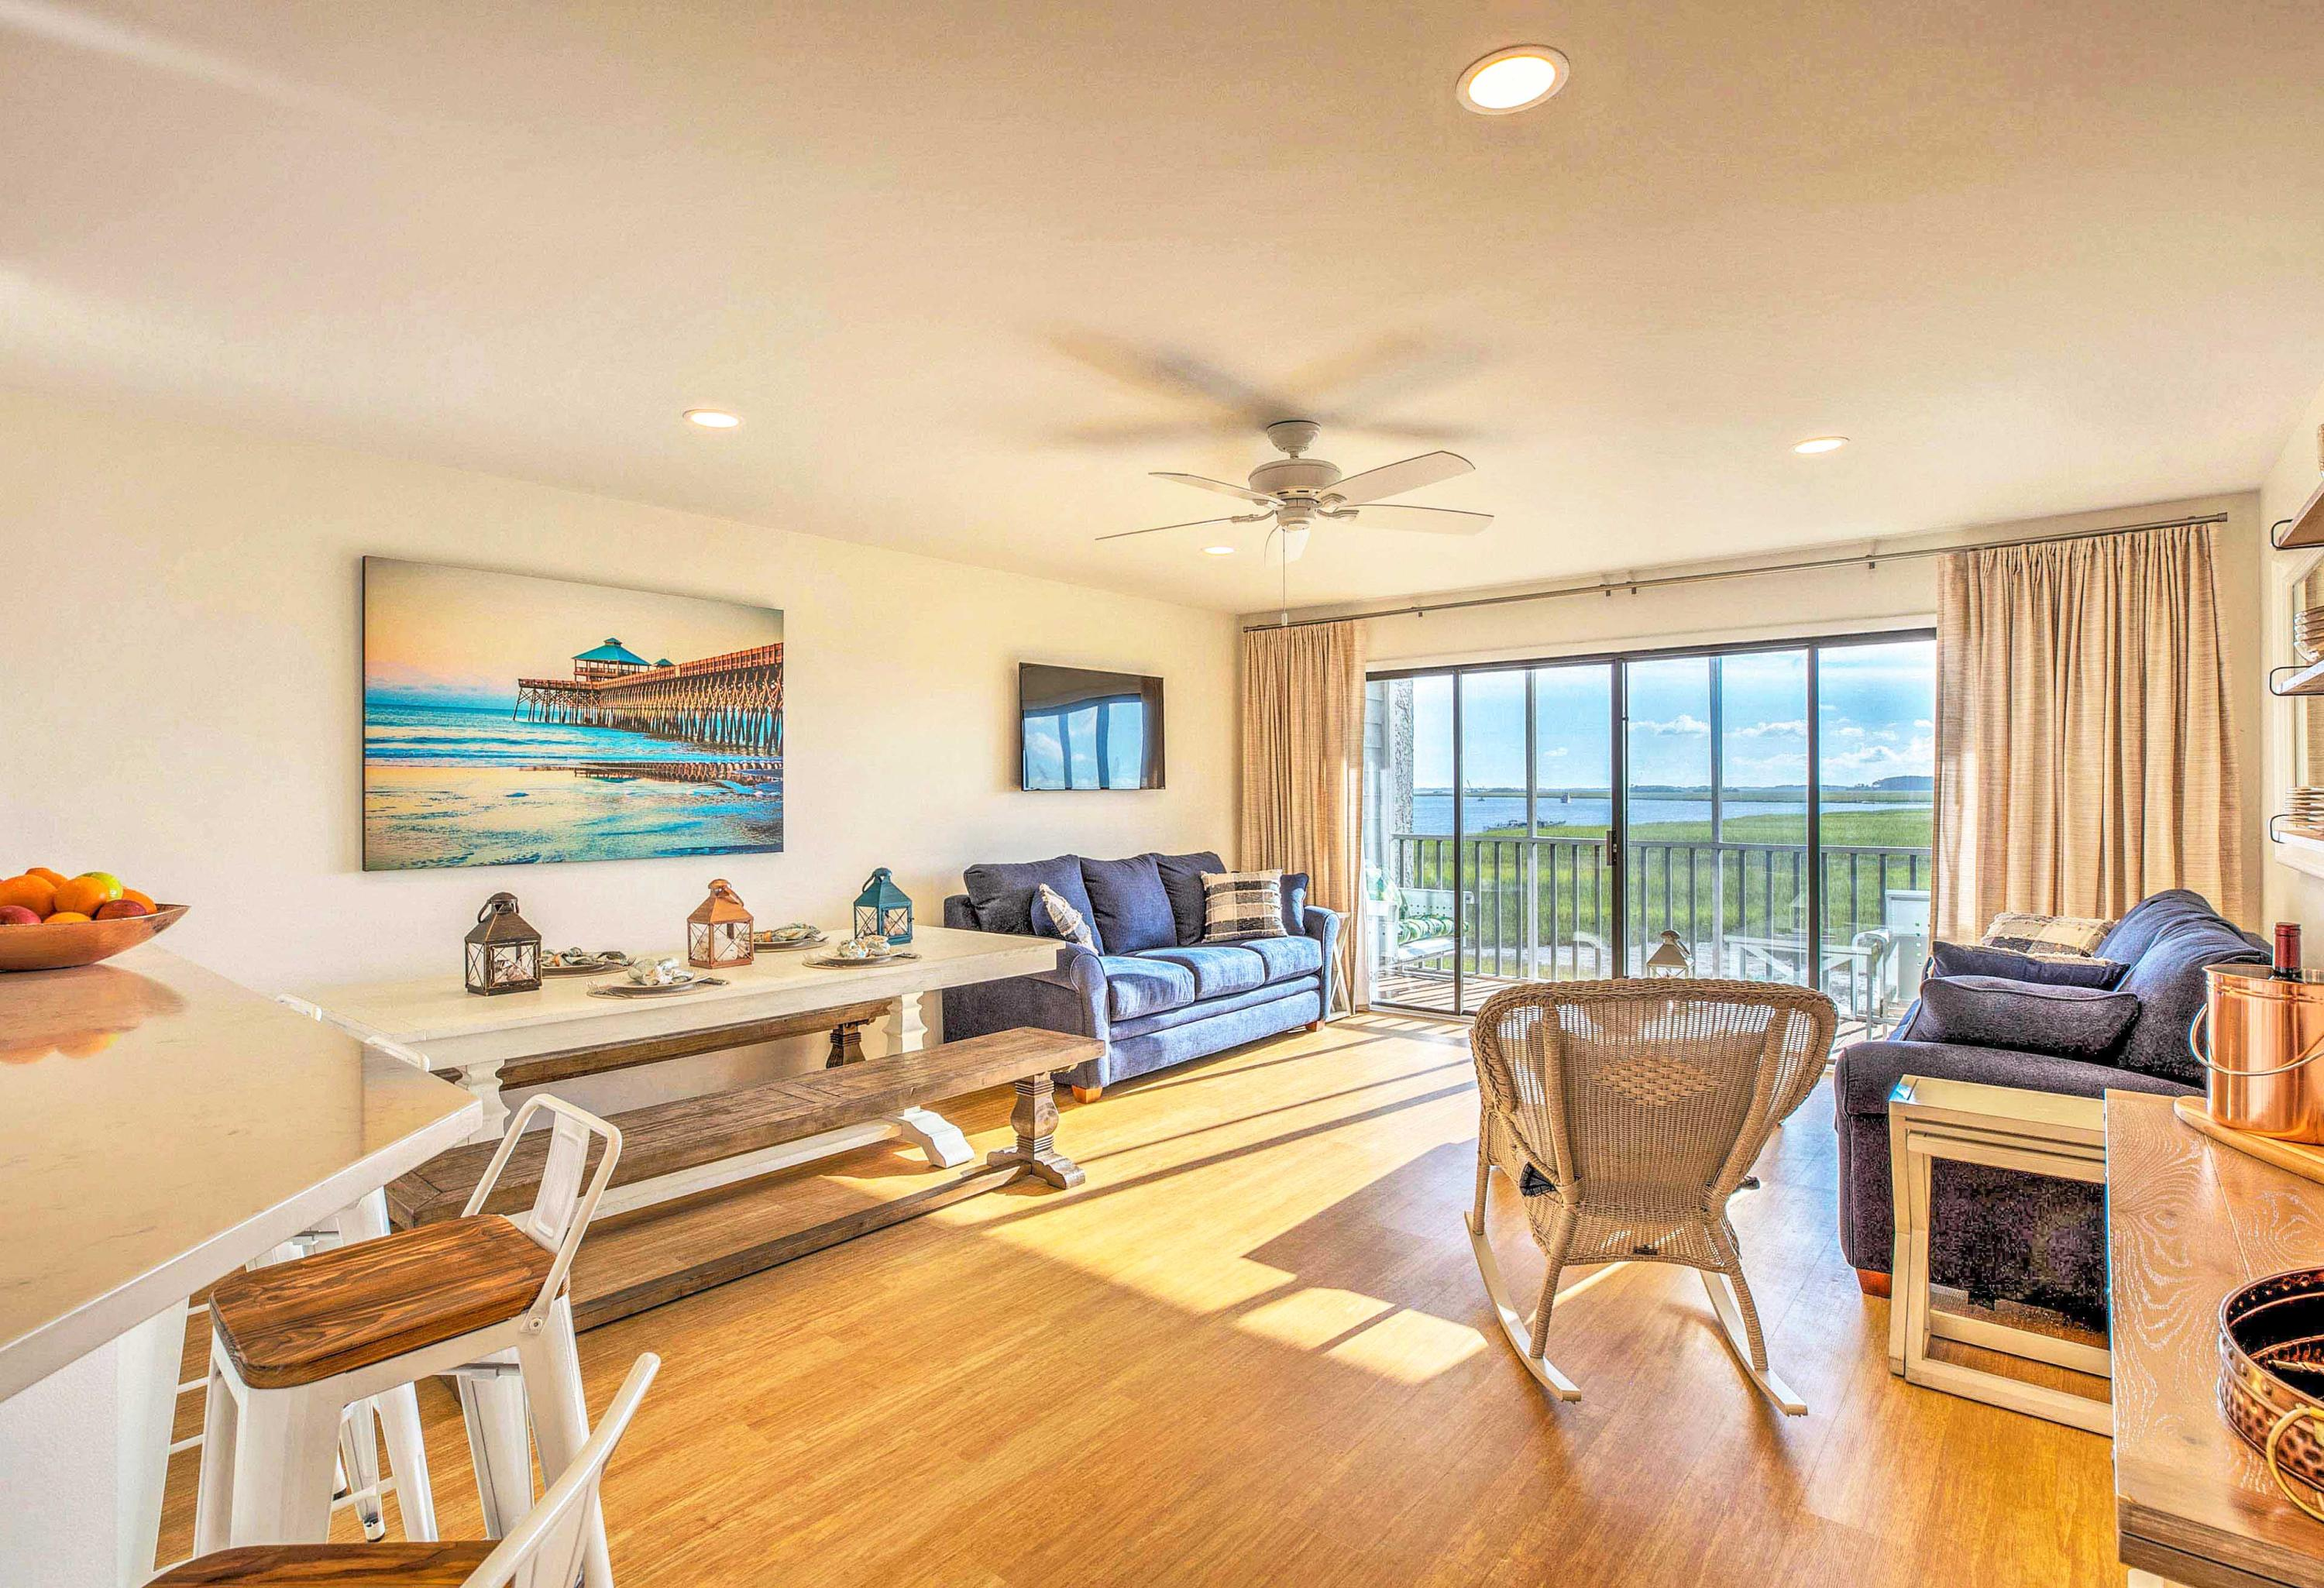 Mariners Cay Homes For Sale - 93 Mariners Cay, Folly Beach, SC - 37